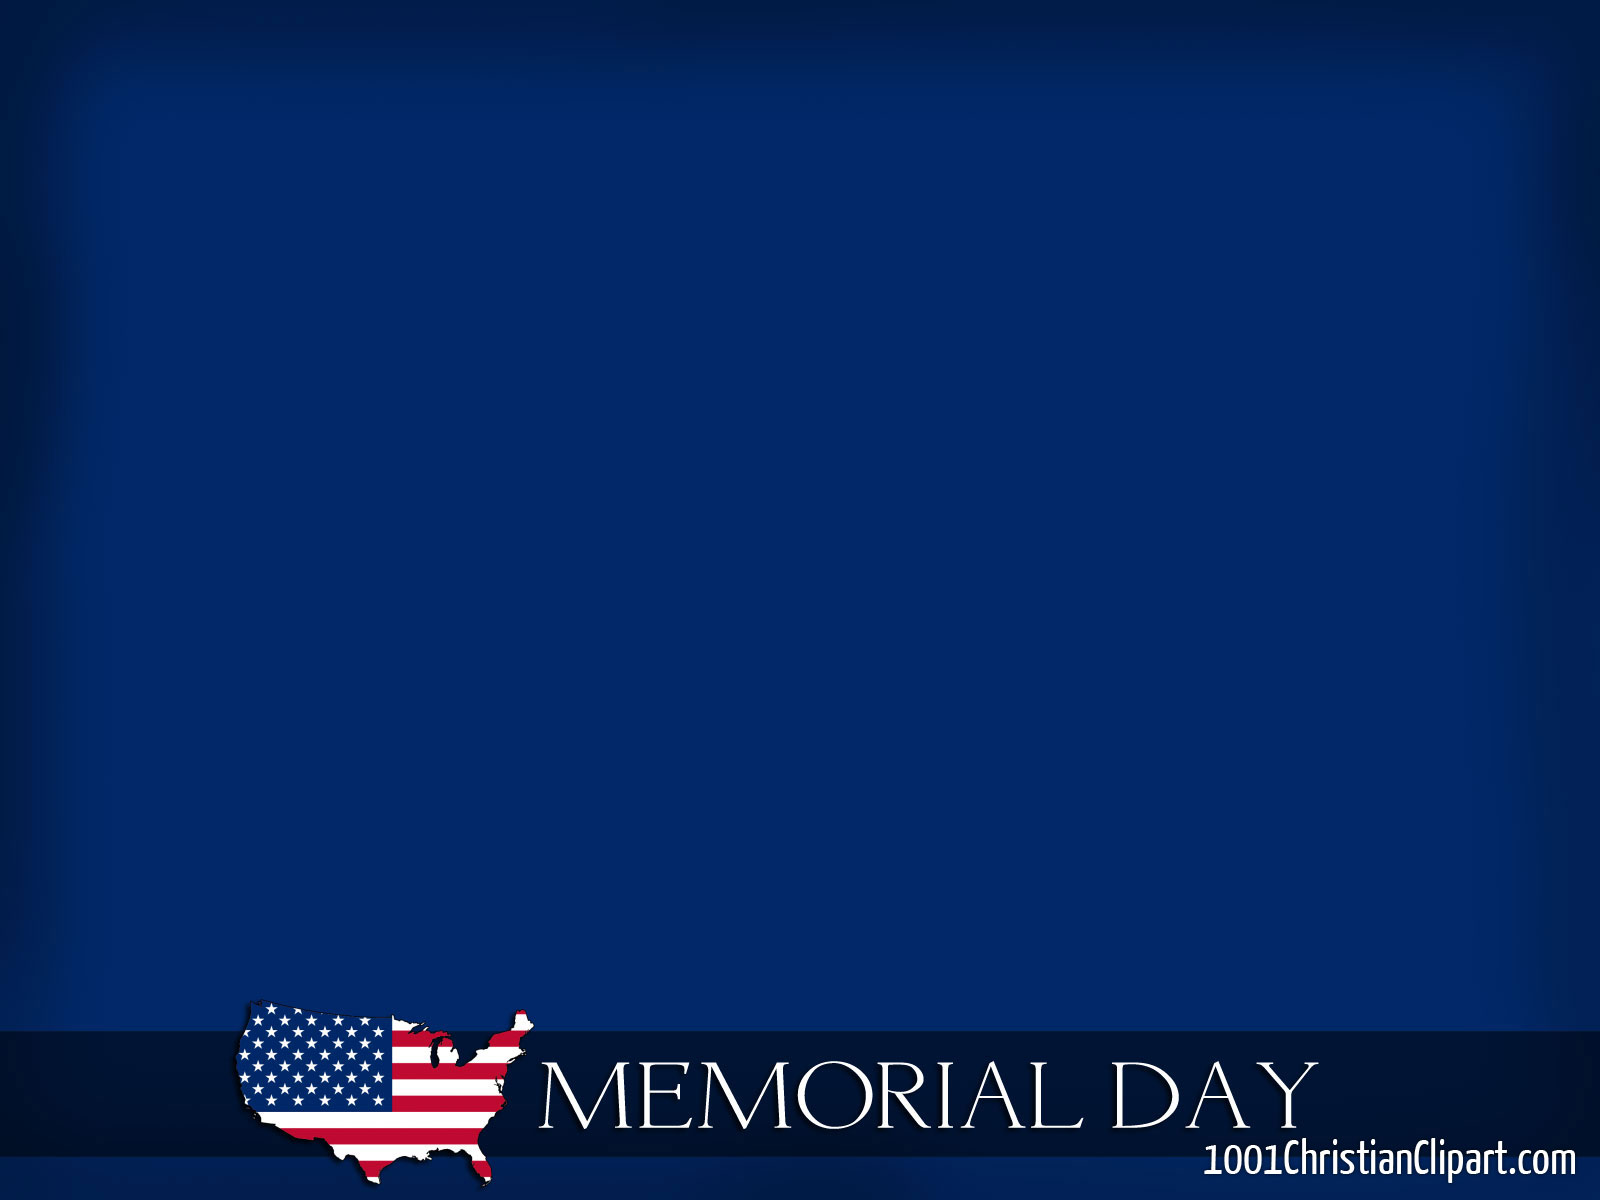 Free download Memorial Day 1001 Christian Clipart [1600x1200.